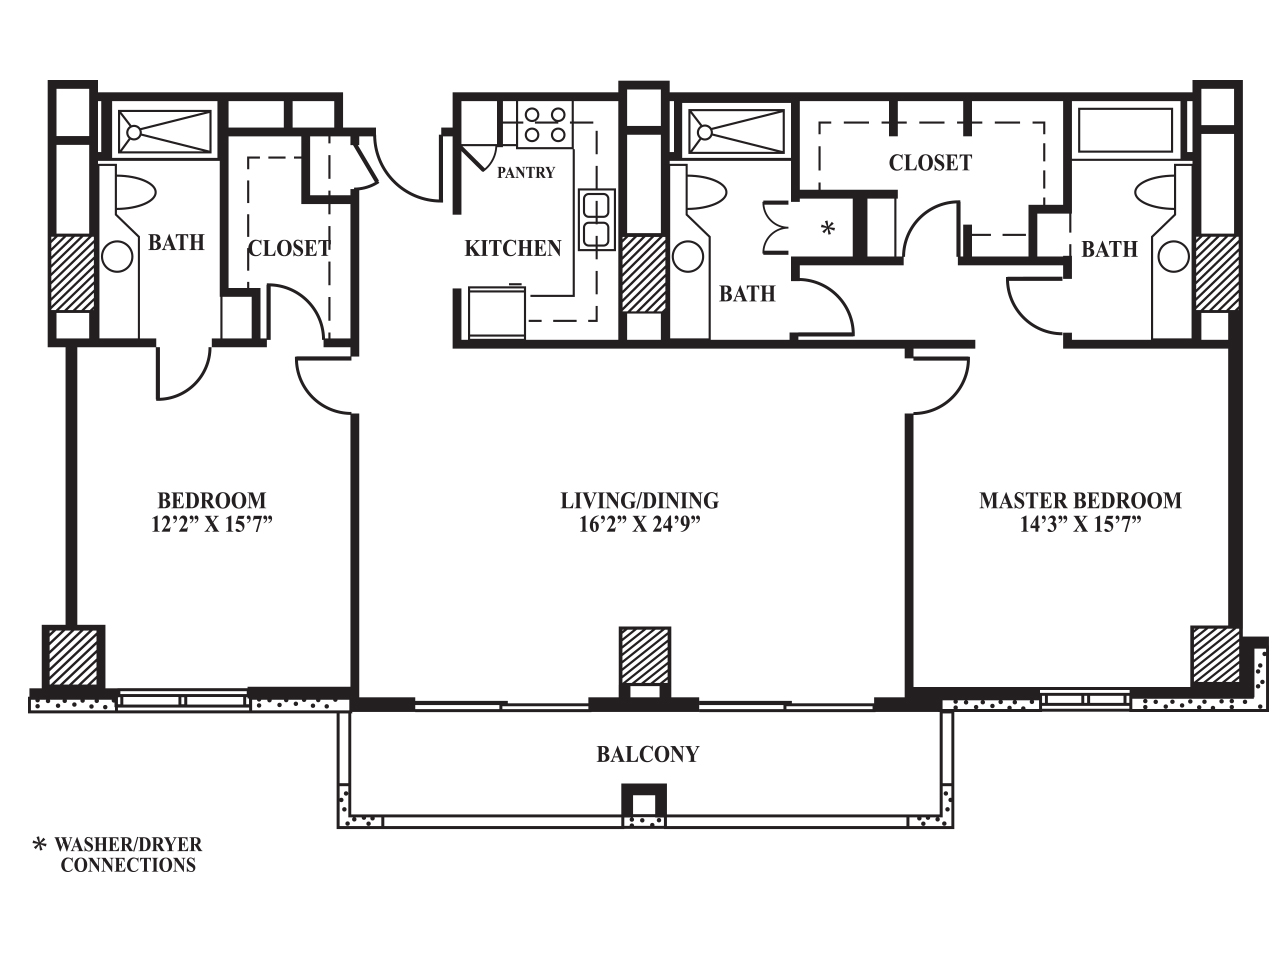 select a floor plan floor plan h   1408 sq ft   the towers on park lane  rh   thetowersonparklane com